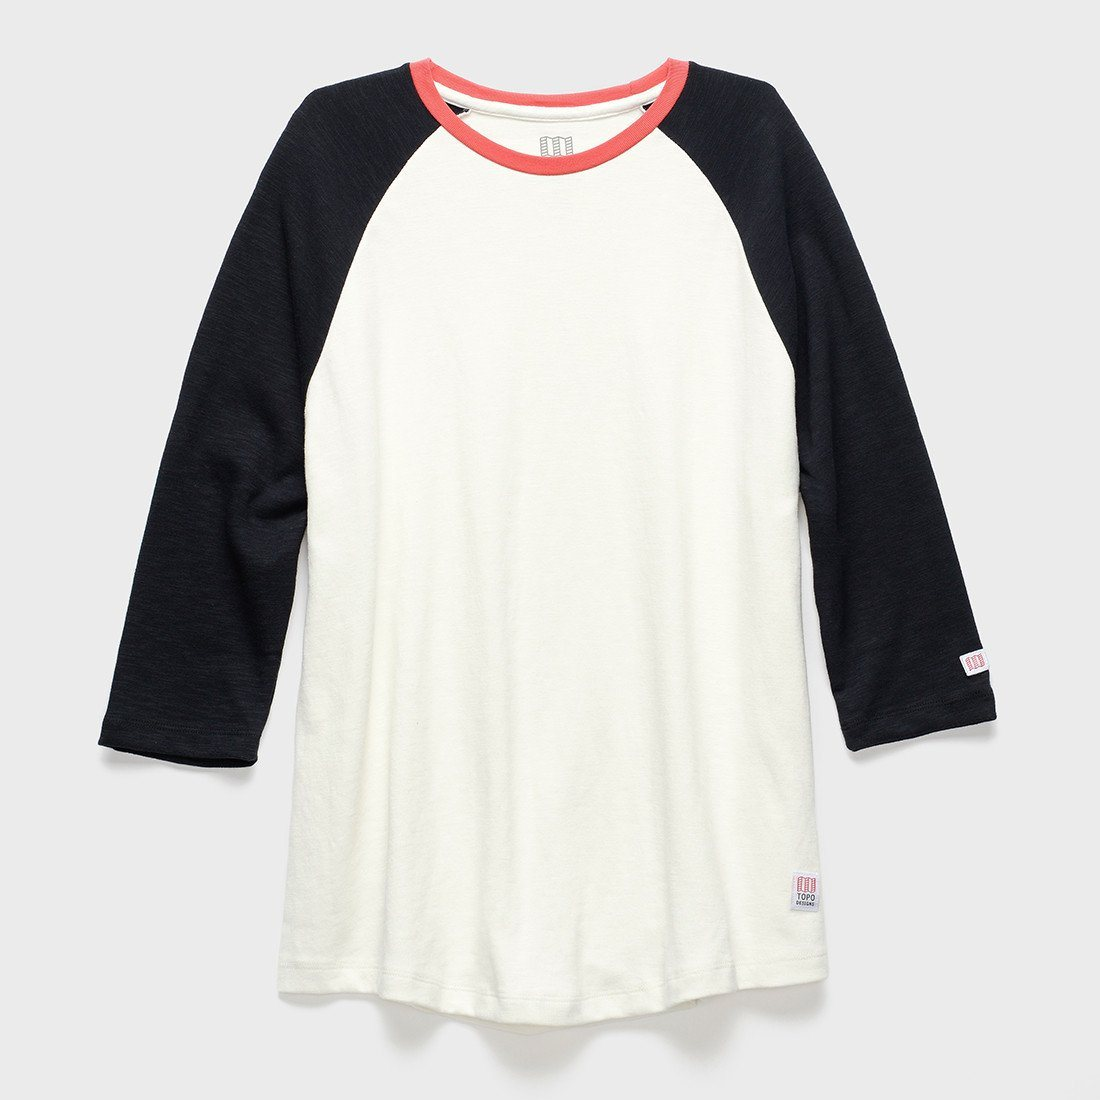 TOPO Designs Baseball T-shirt Natural/Black